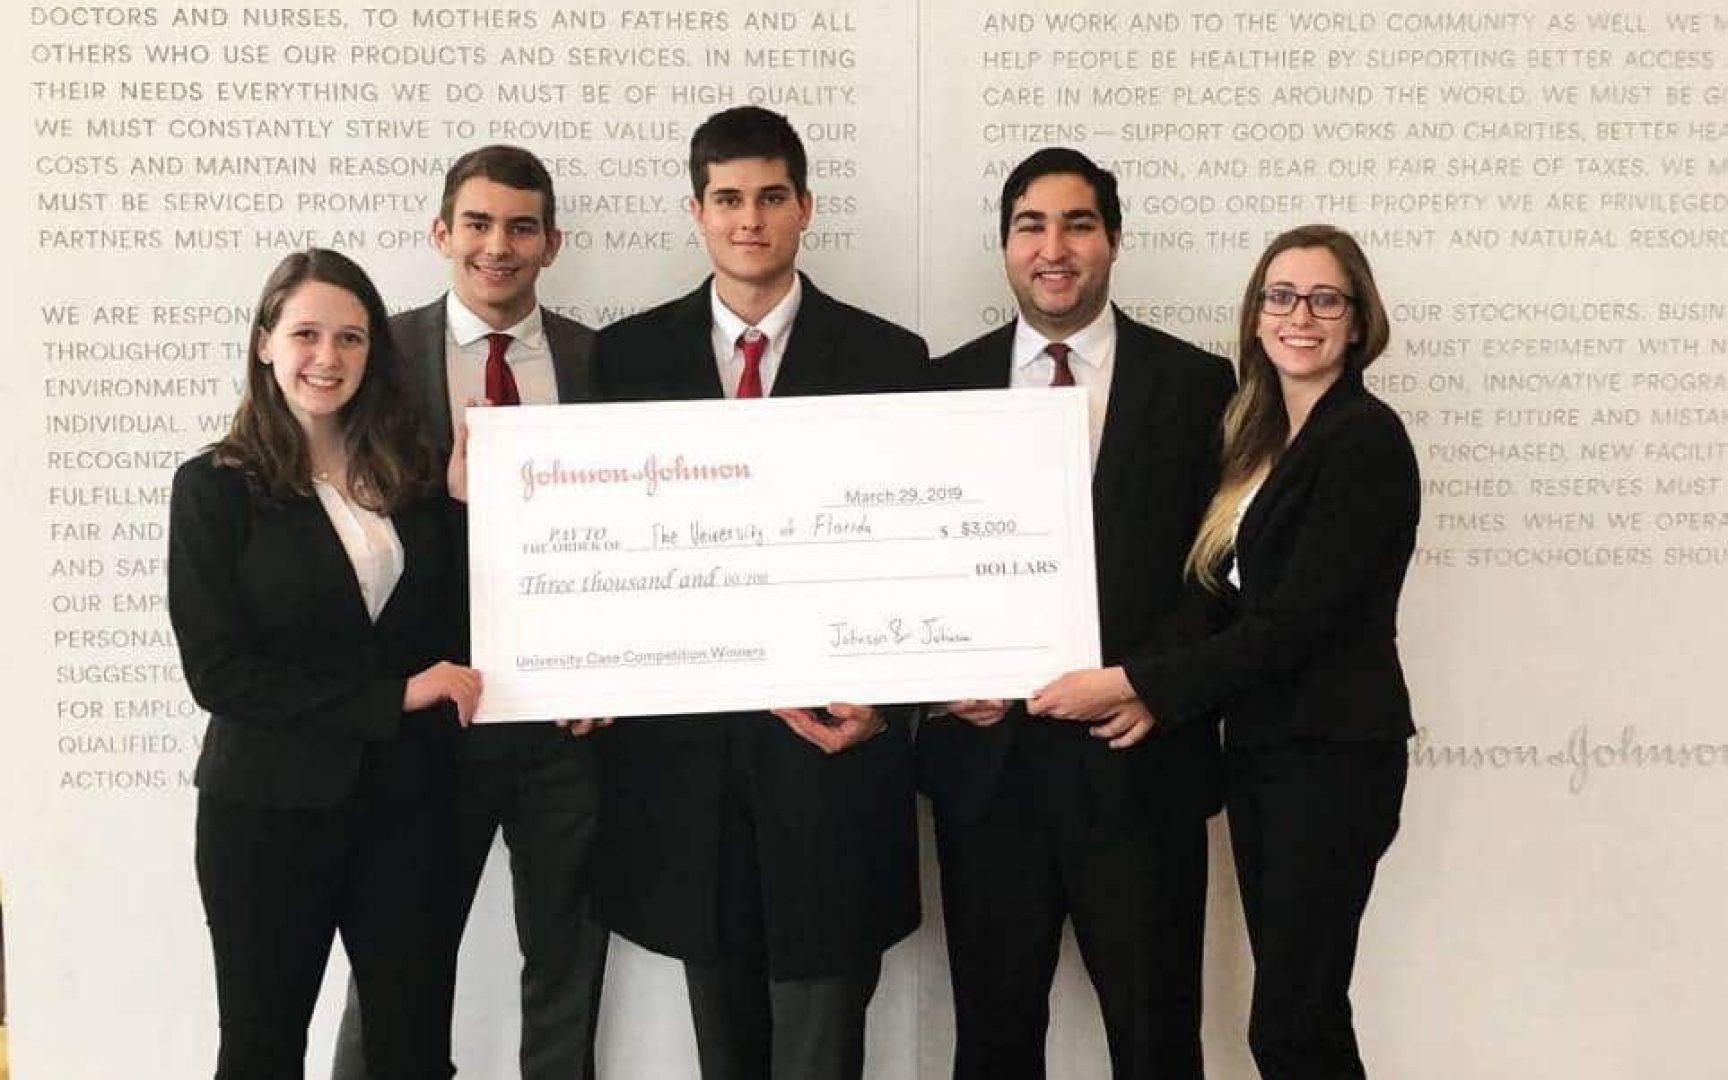 The winning team of Heavener School of Business students with their check from the Johnson & Johnson Case Competition.